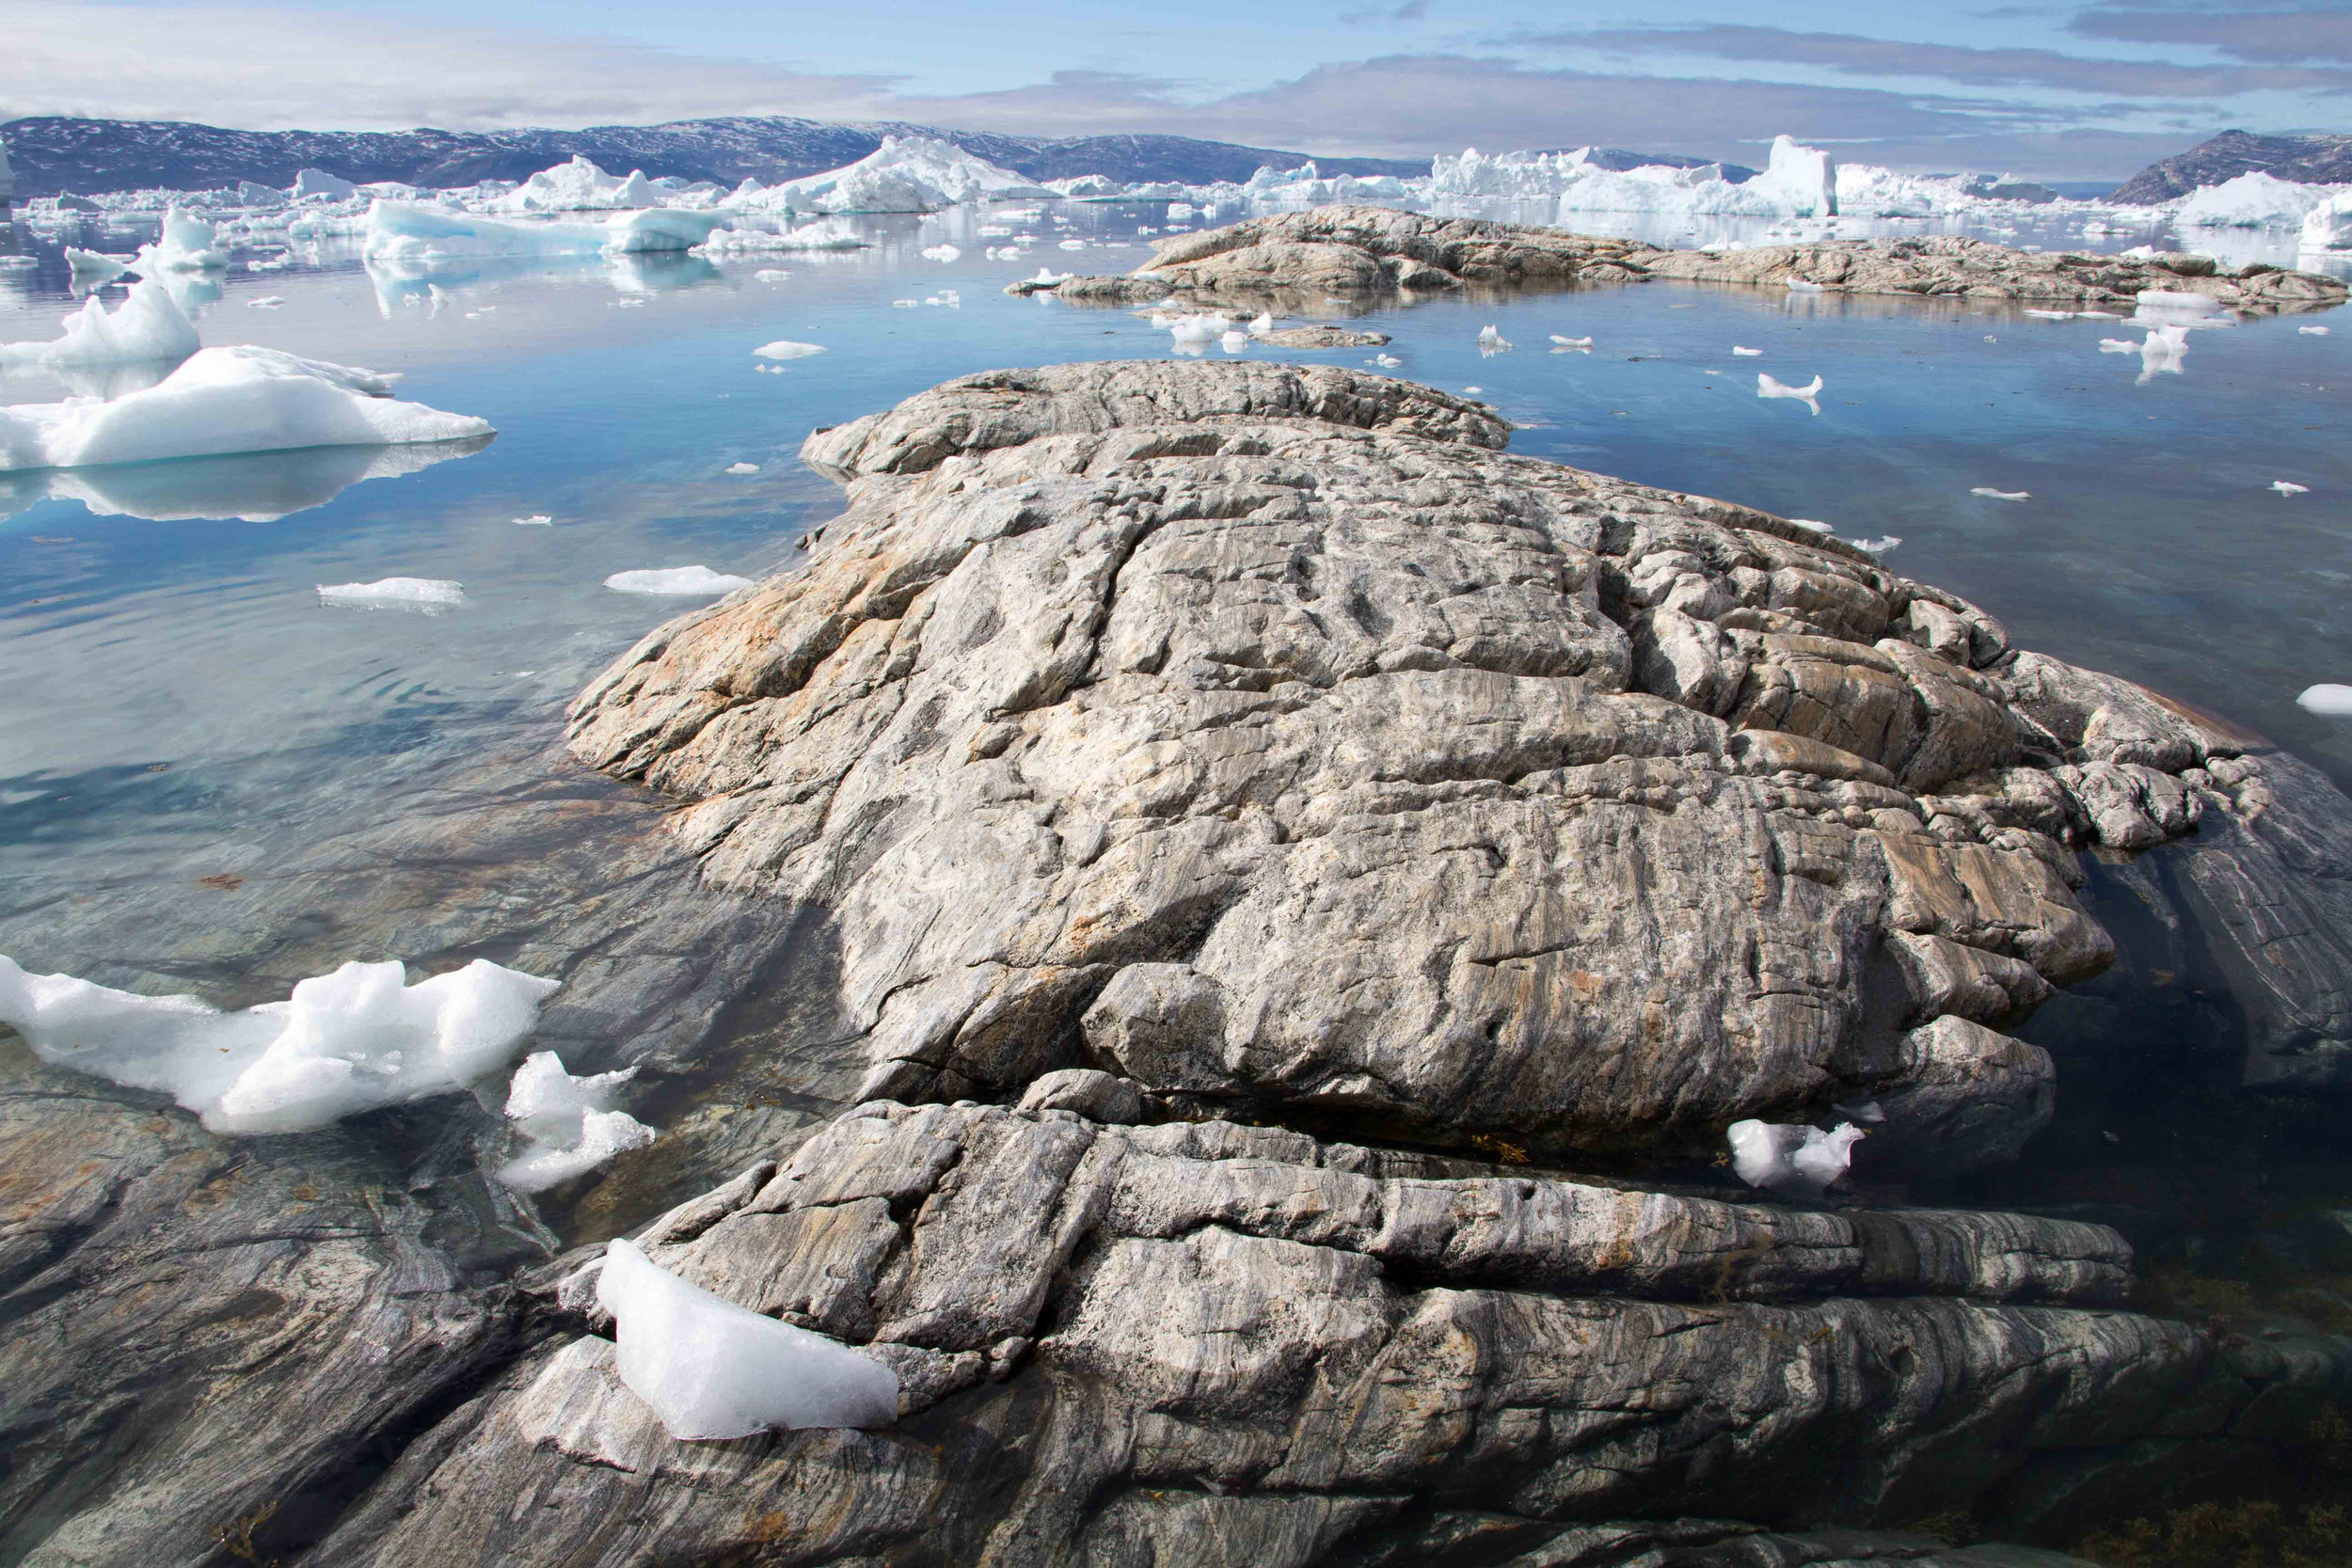 Rocks are exposed at the tide recedes, eventually beaching some of the smaller icebergs. Tinit, Greenland.